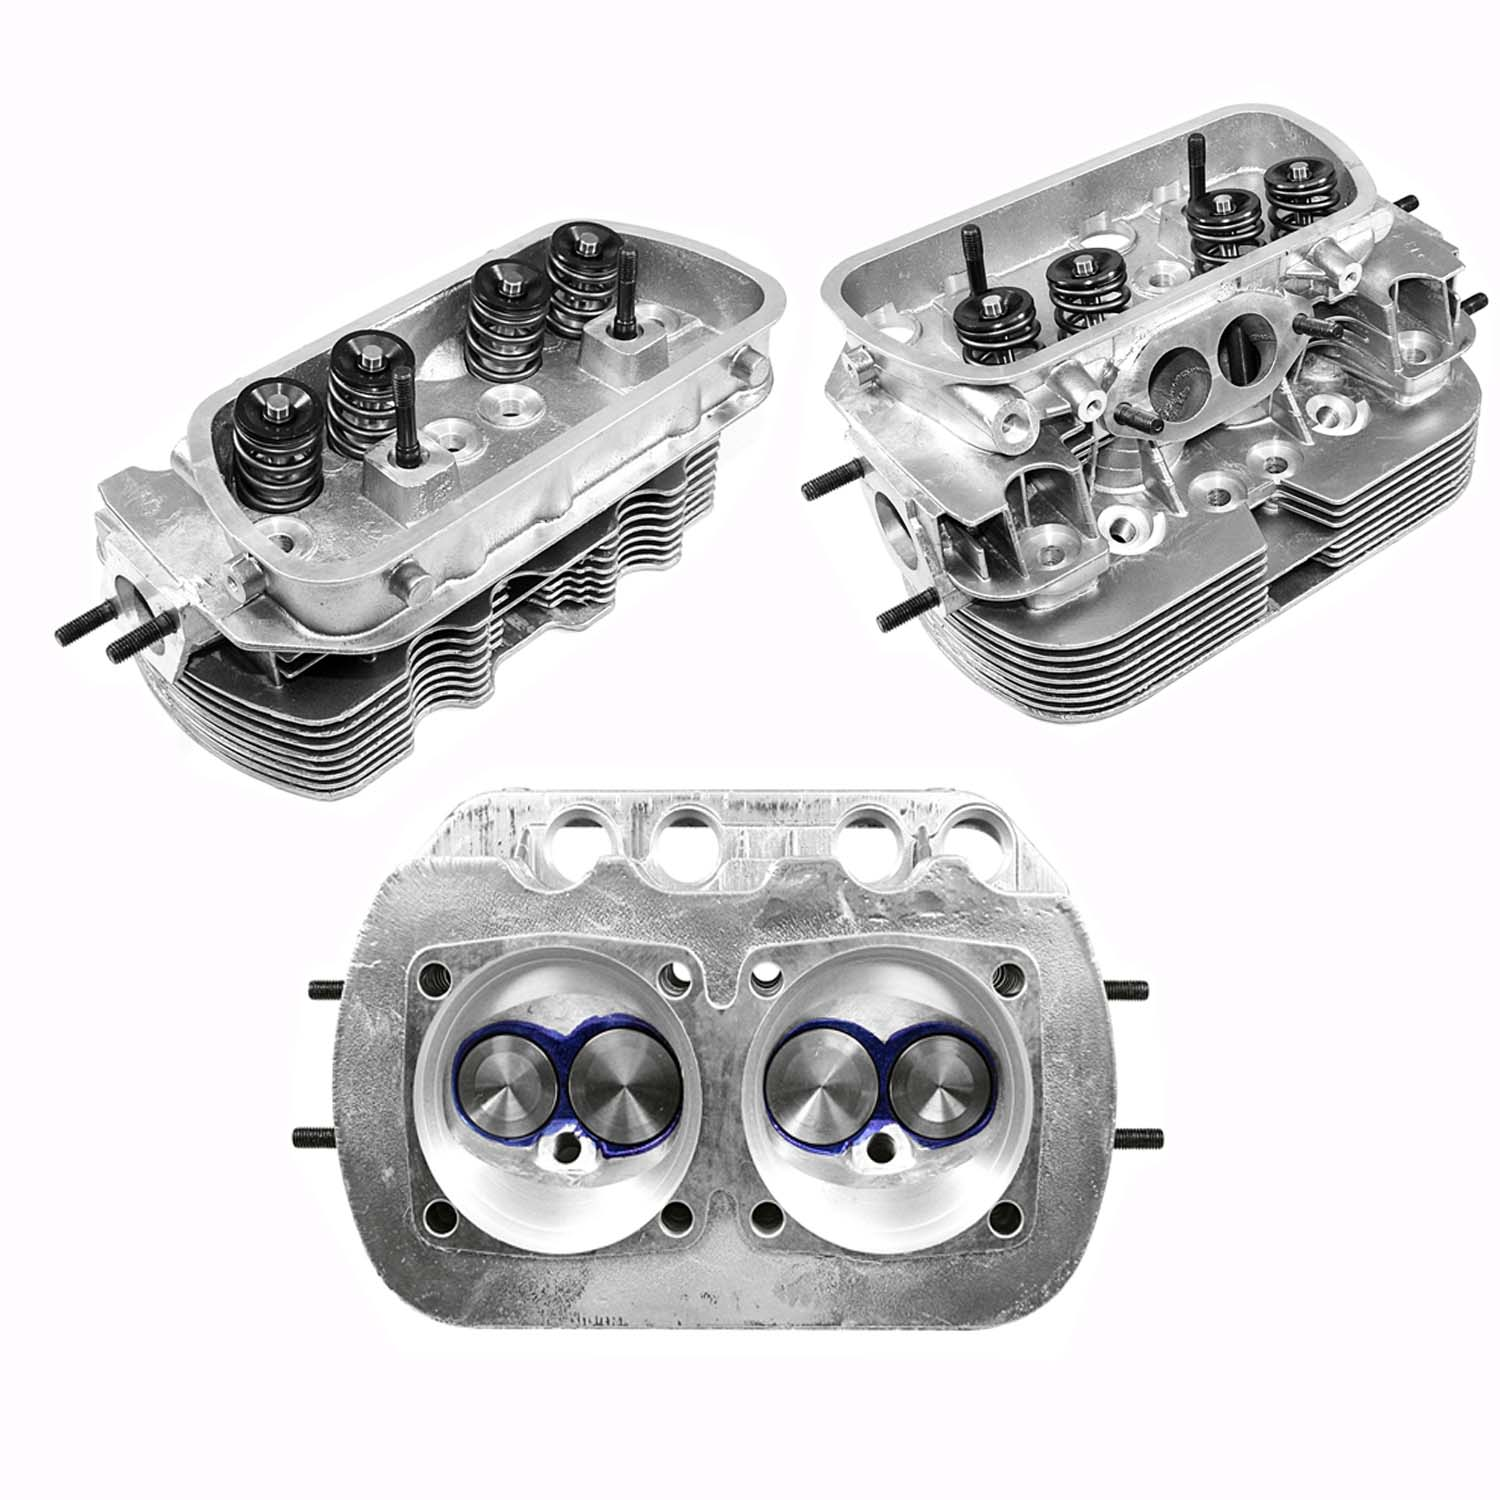 Kühltek Motorwerks High Performance Cylinder Heads